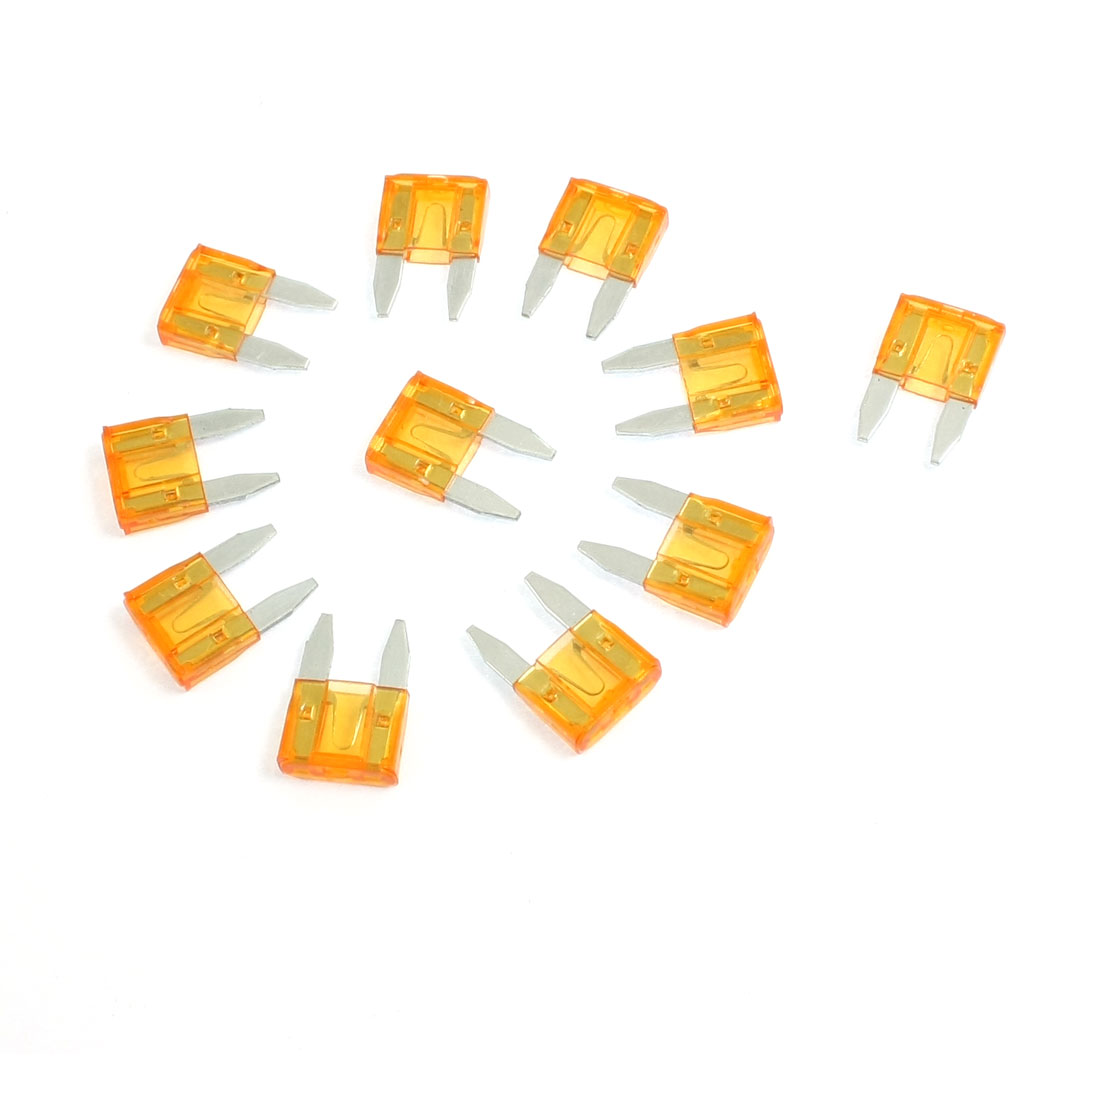 10 Pcs ATC Fuse Auto Car Boat Truck Blade Type 5A Orange